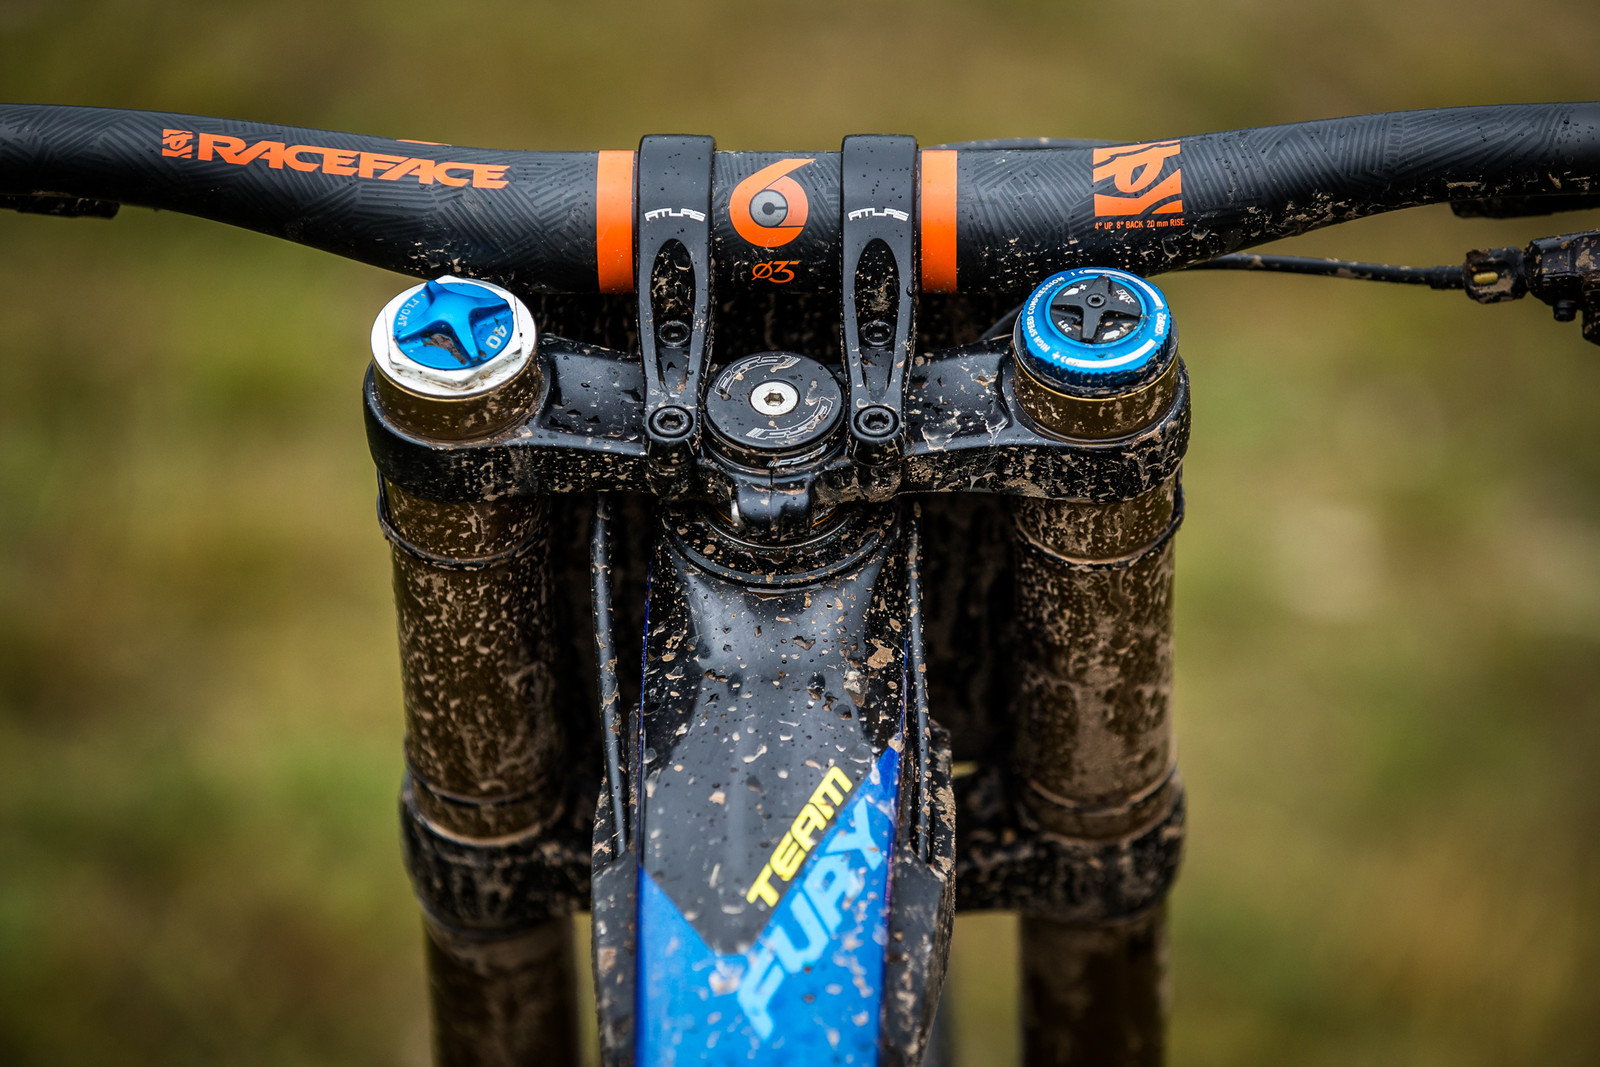 Race Face SixC Bar and Atlas DM Stem - WINNING BIKE - Martin Maes' GT Fury - Mountain Biking Pictures - Vital MTB